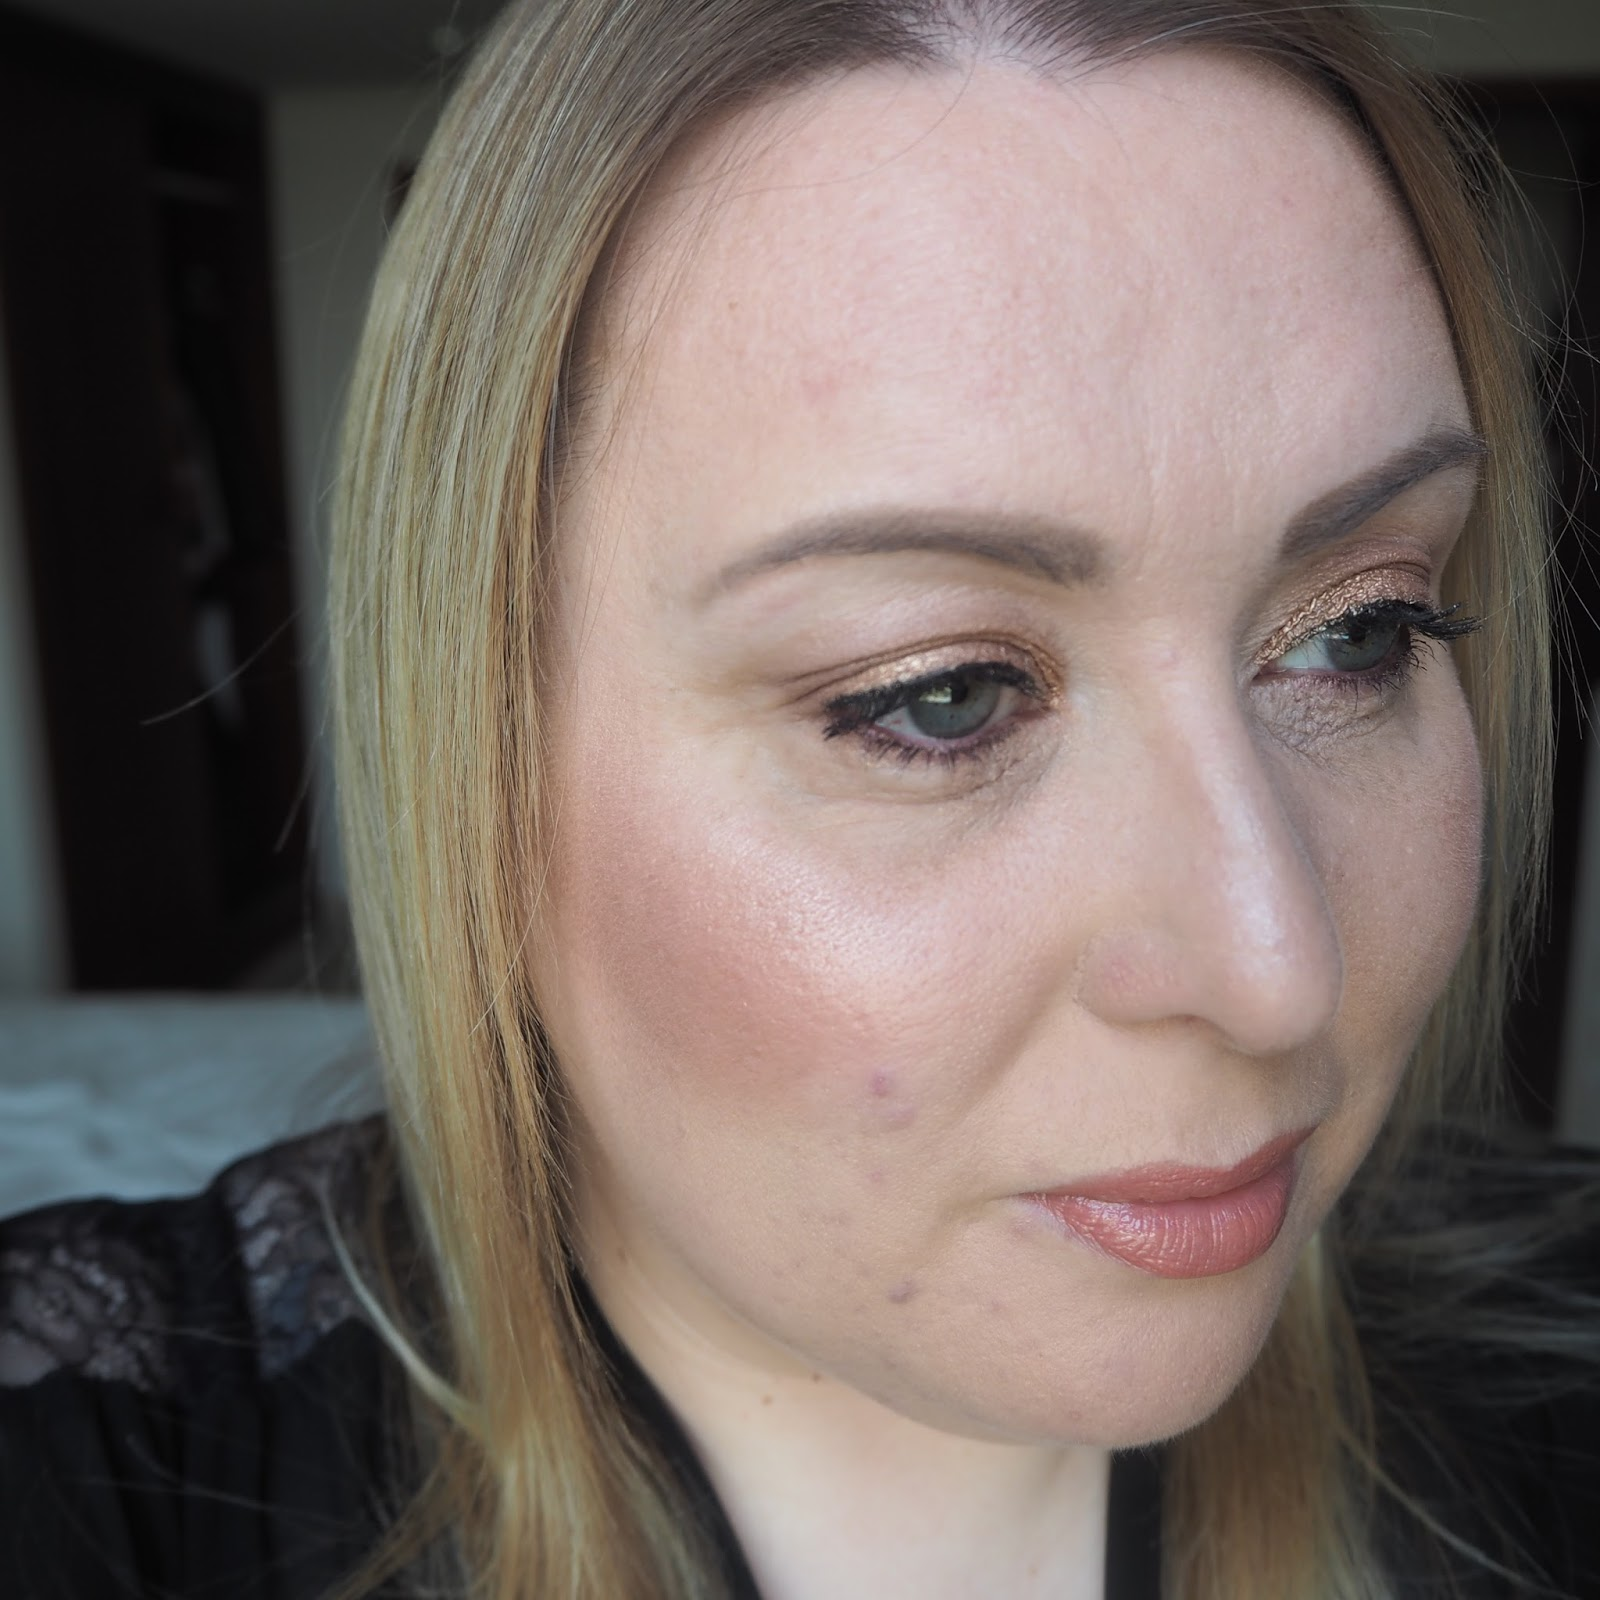 Anastasia Glow Kit in Gleam review Starburst